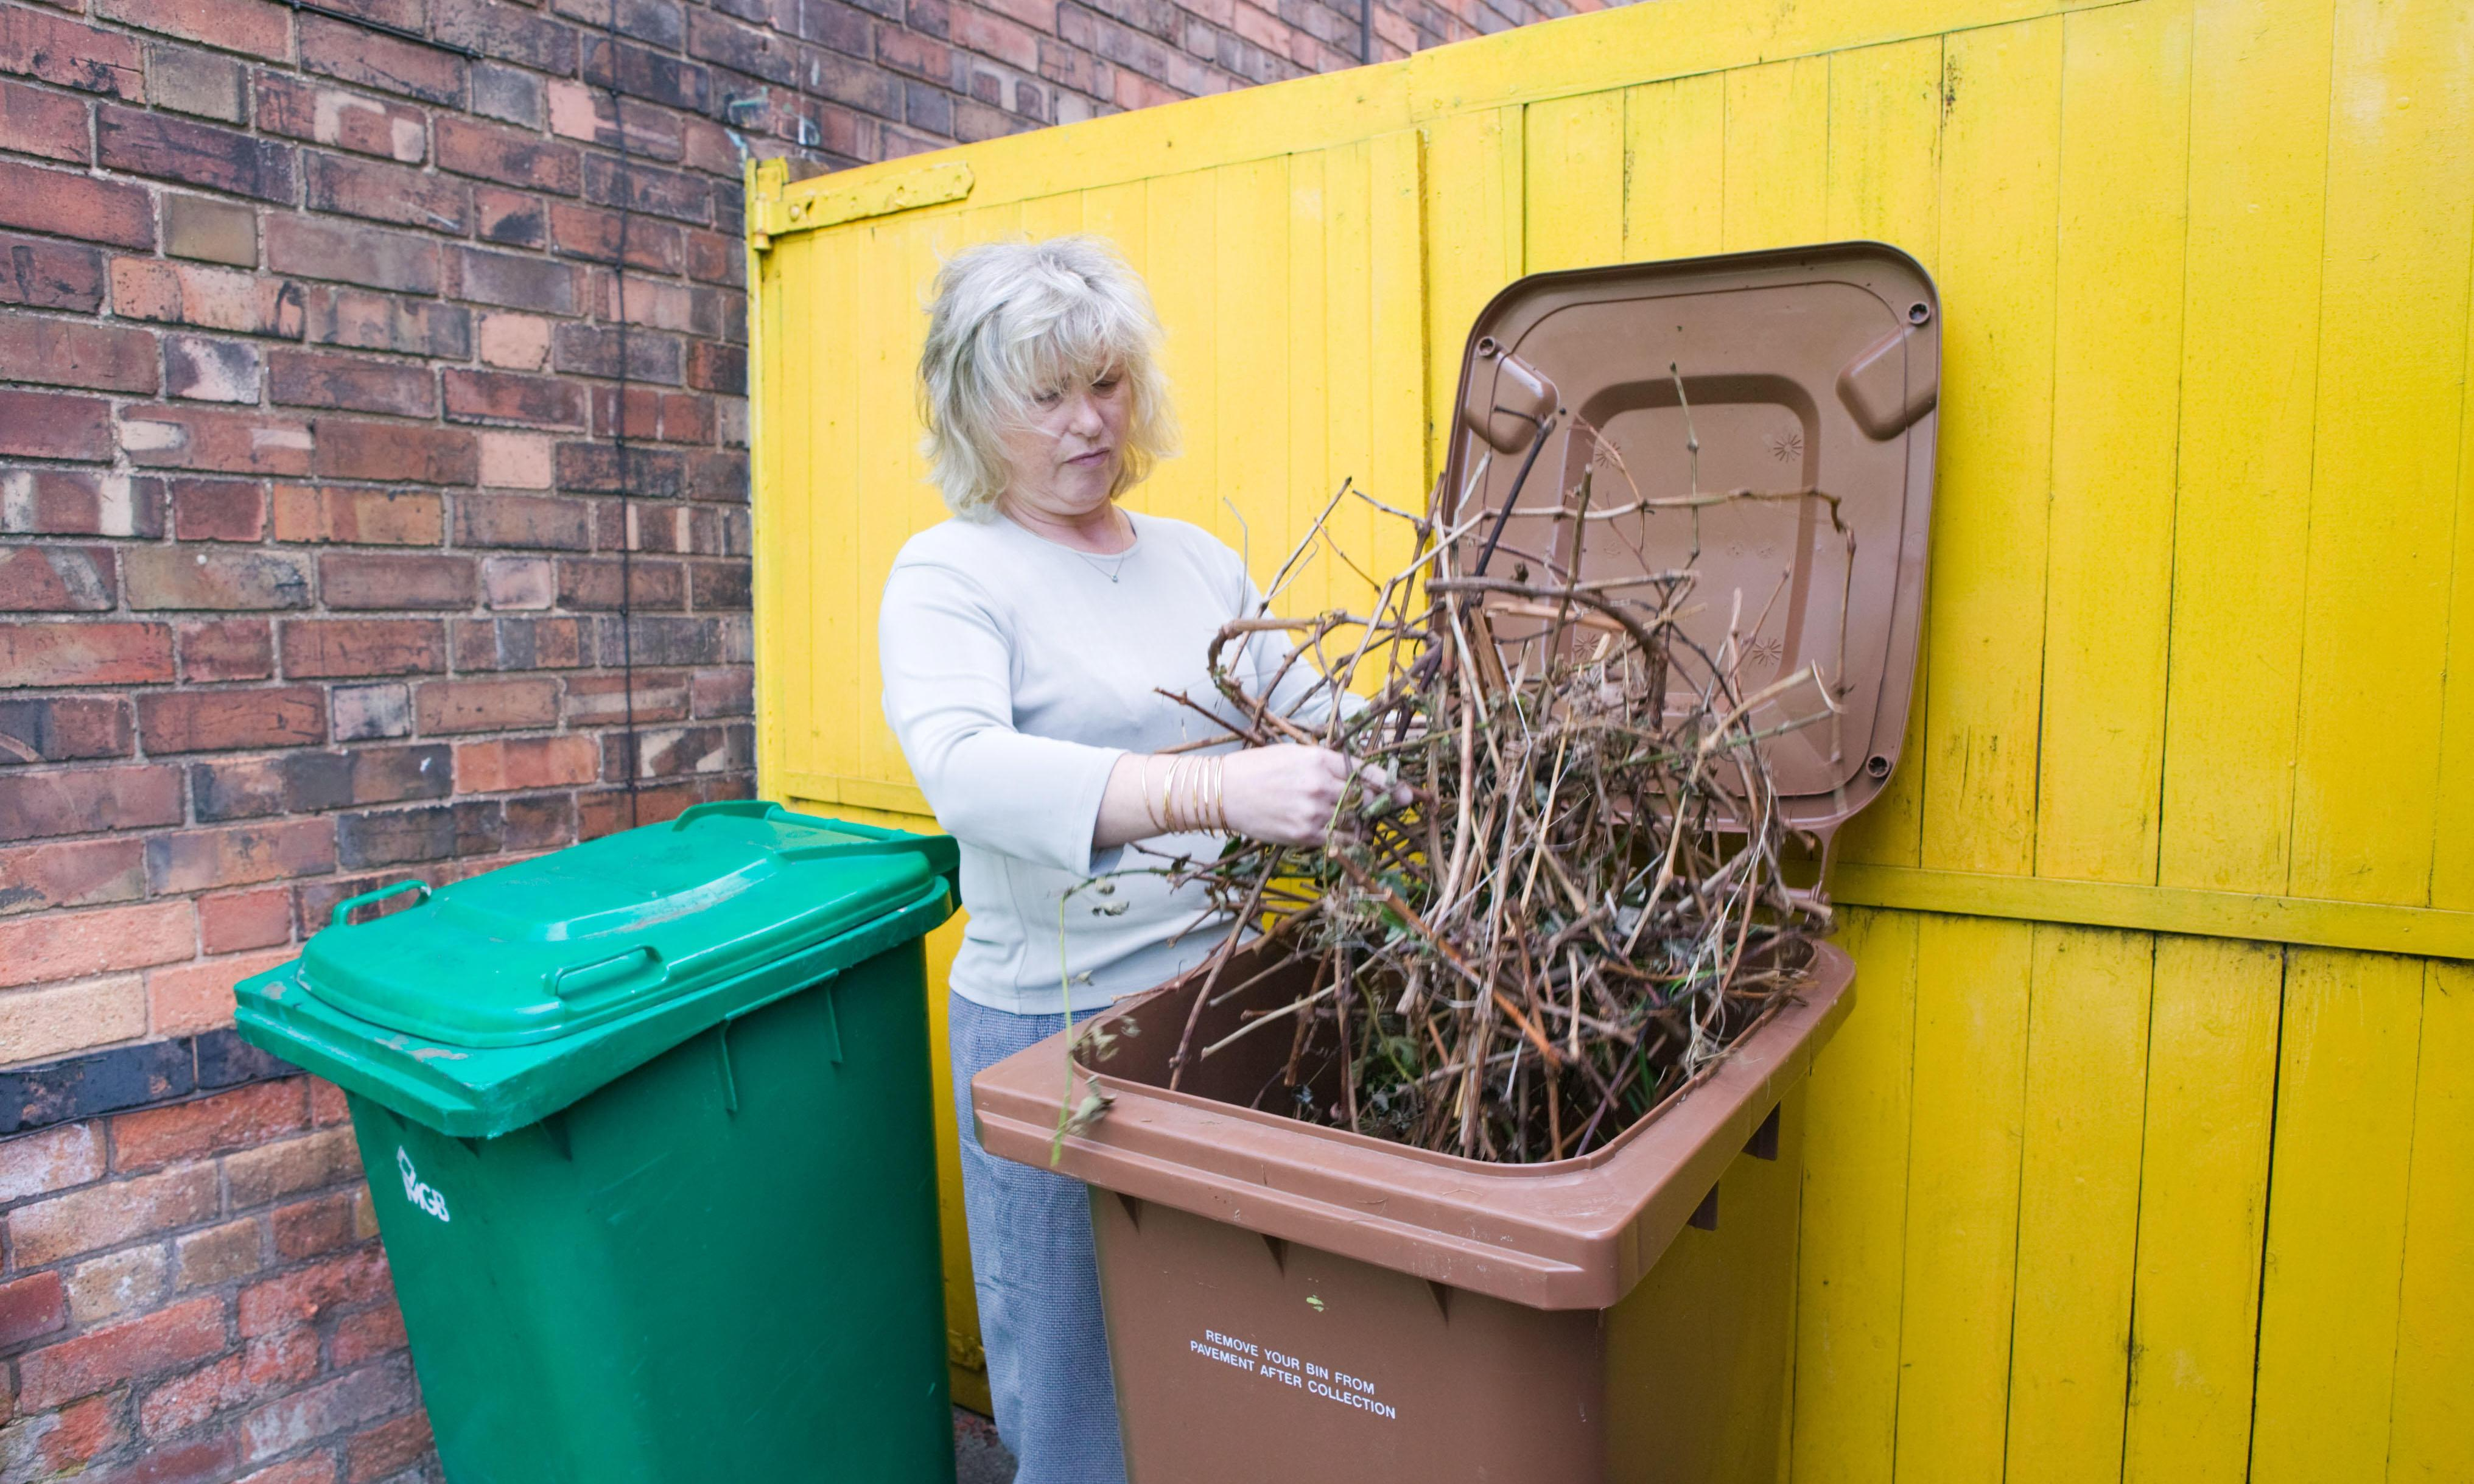 Rubbish charges: from £96 for garden waste to £1.50 for a toilet